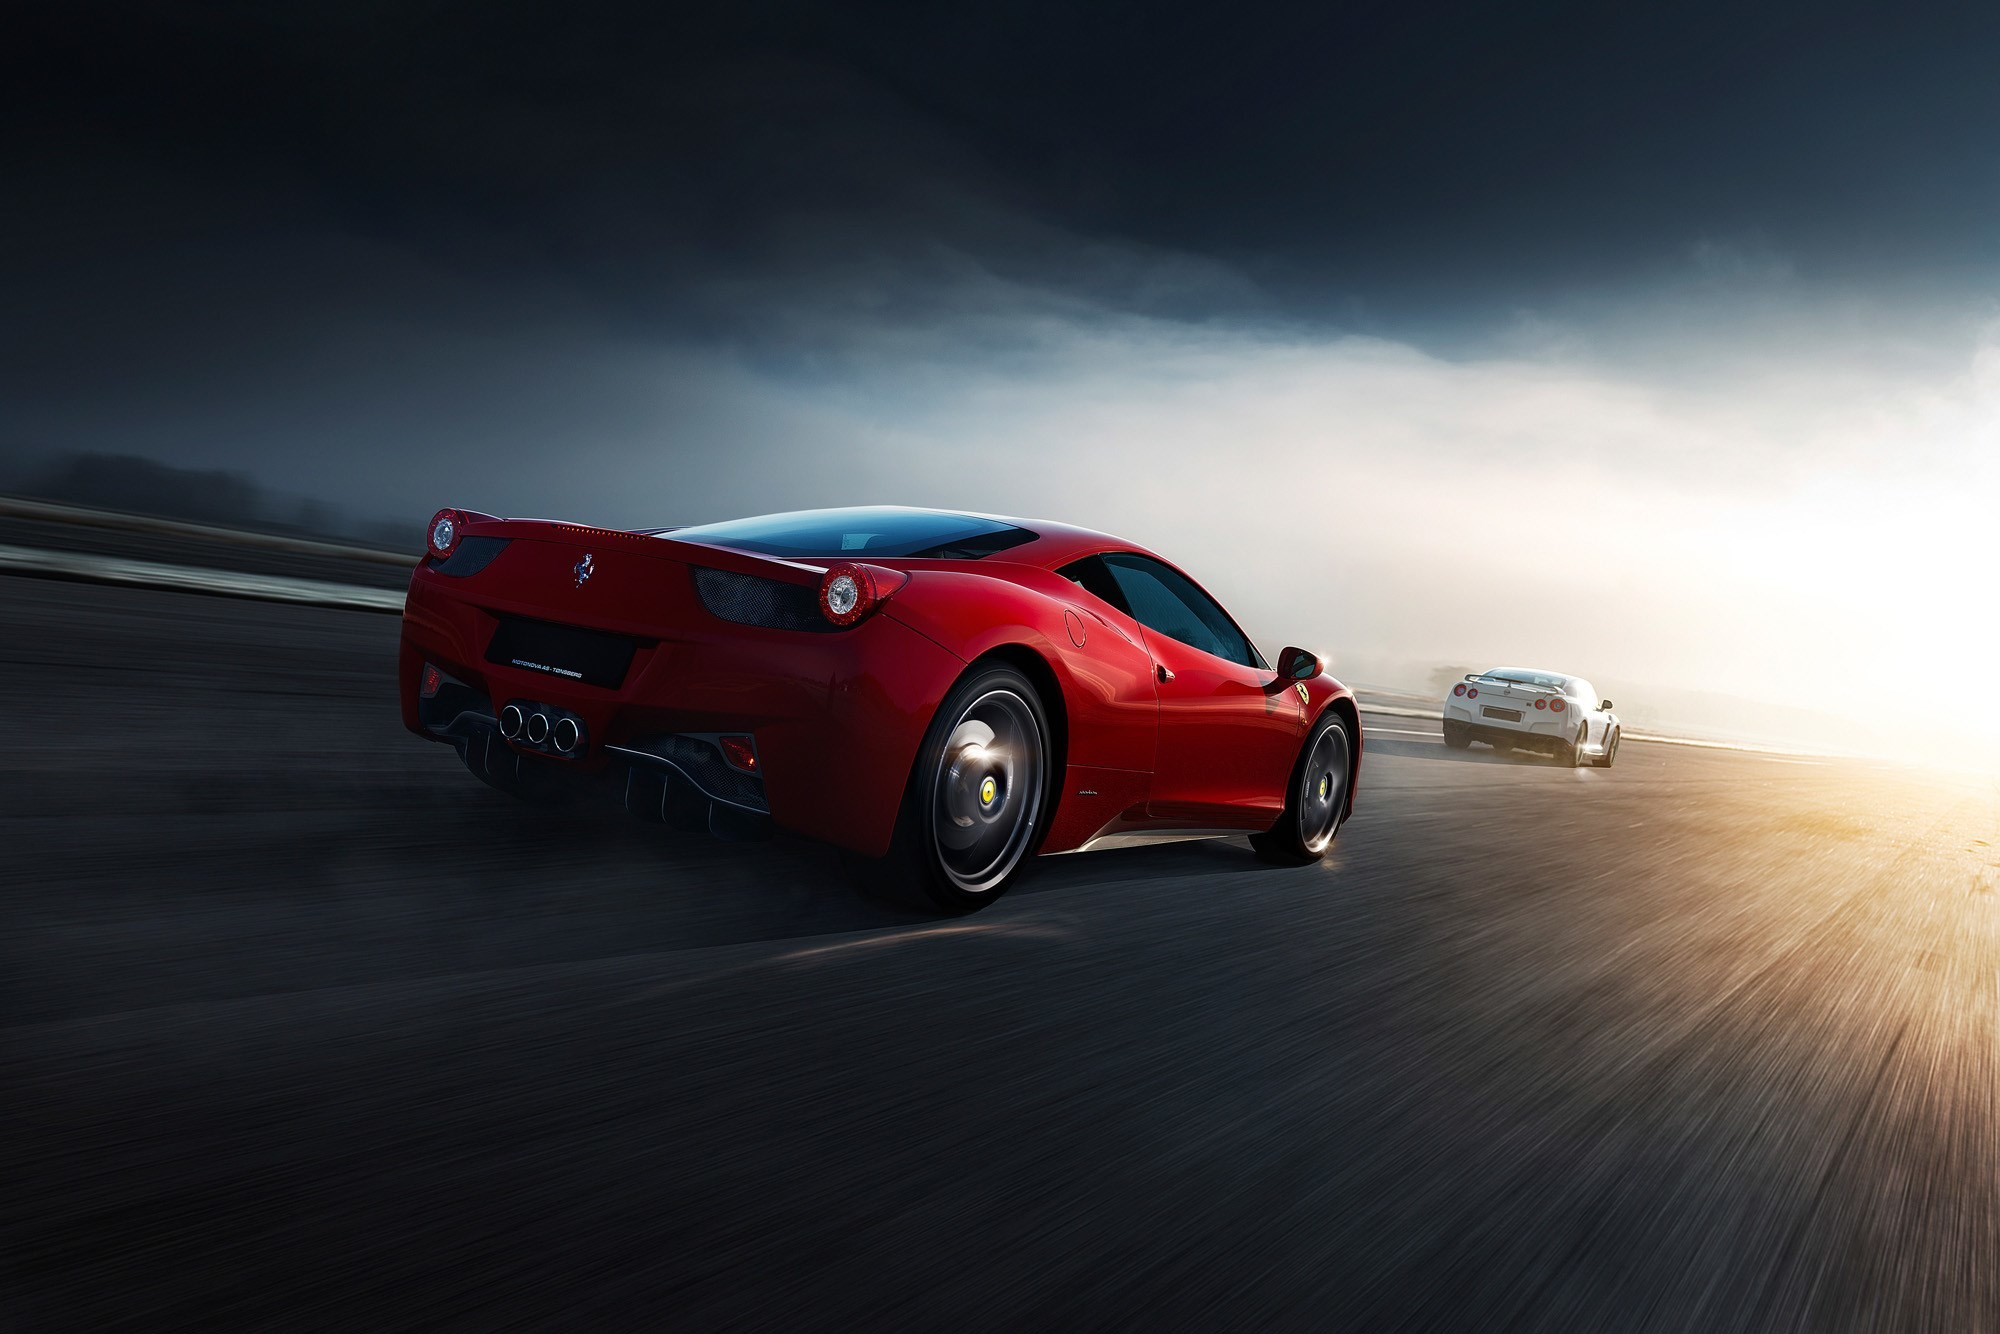 Ferrari 458 Italia Hd Wallpaper 83 Images